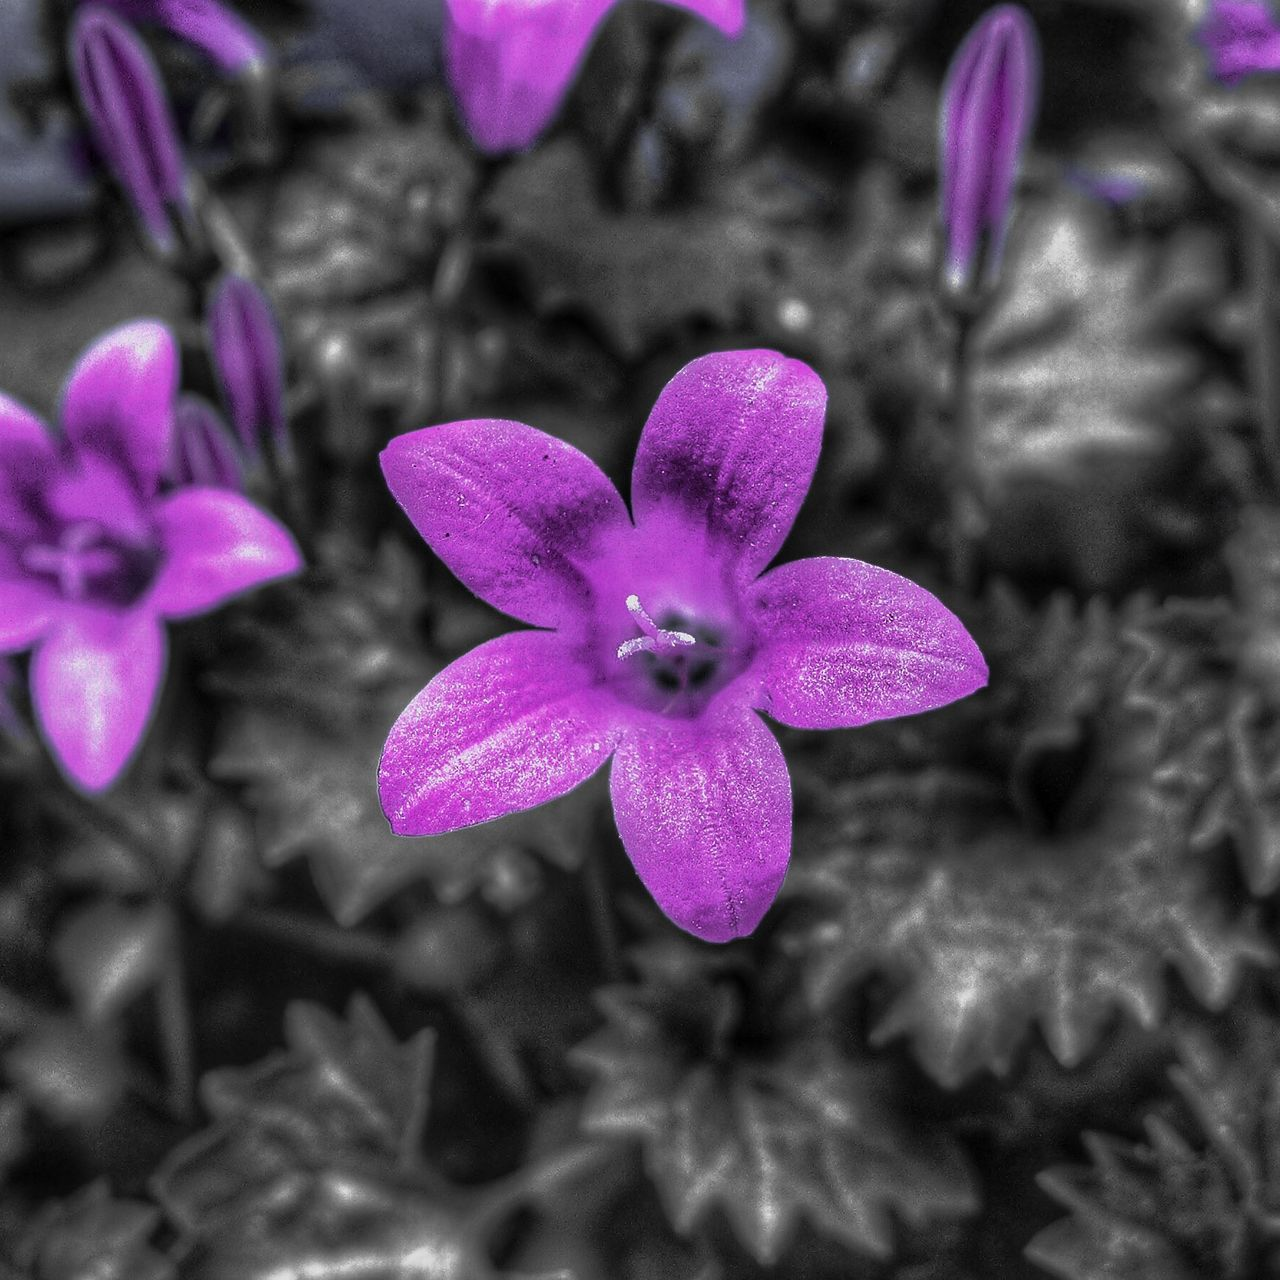 flower, petal, purple, fragility, beauty in nature, nature, no people, freshness, plant, day, flower head, close-up, growth, pink color, outdoors, blooming, periwinkle